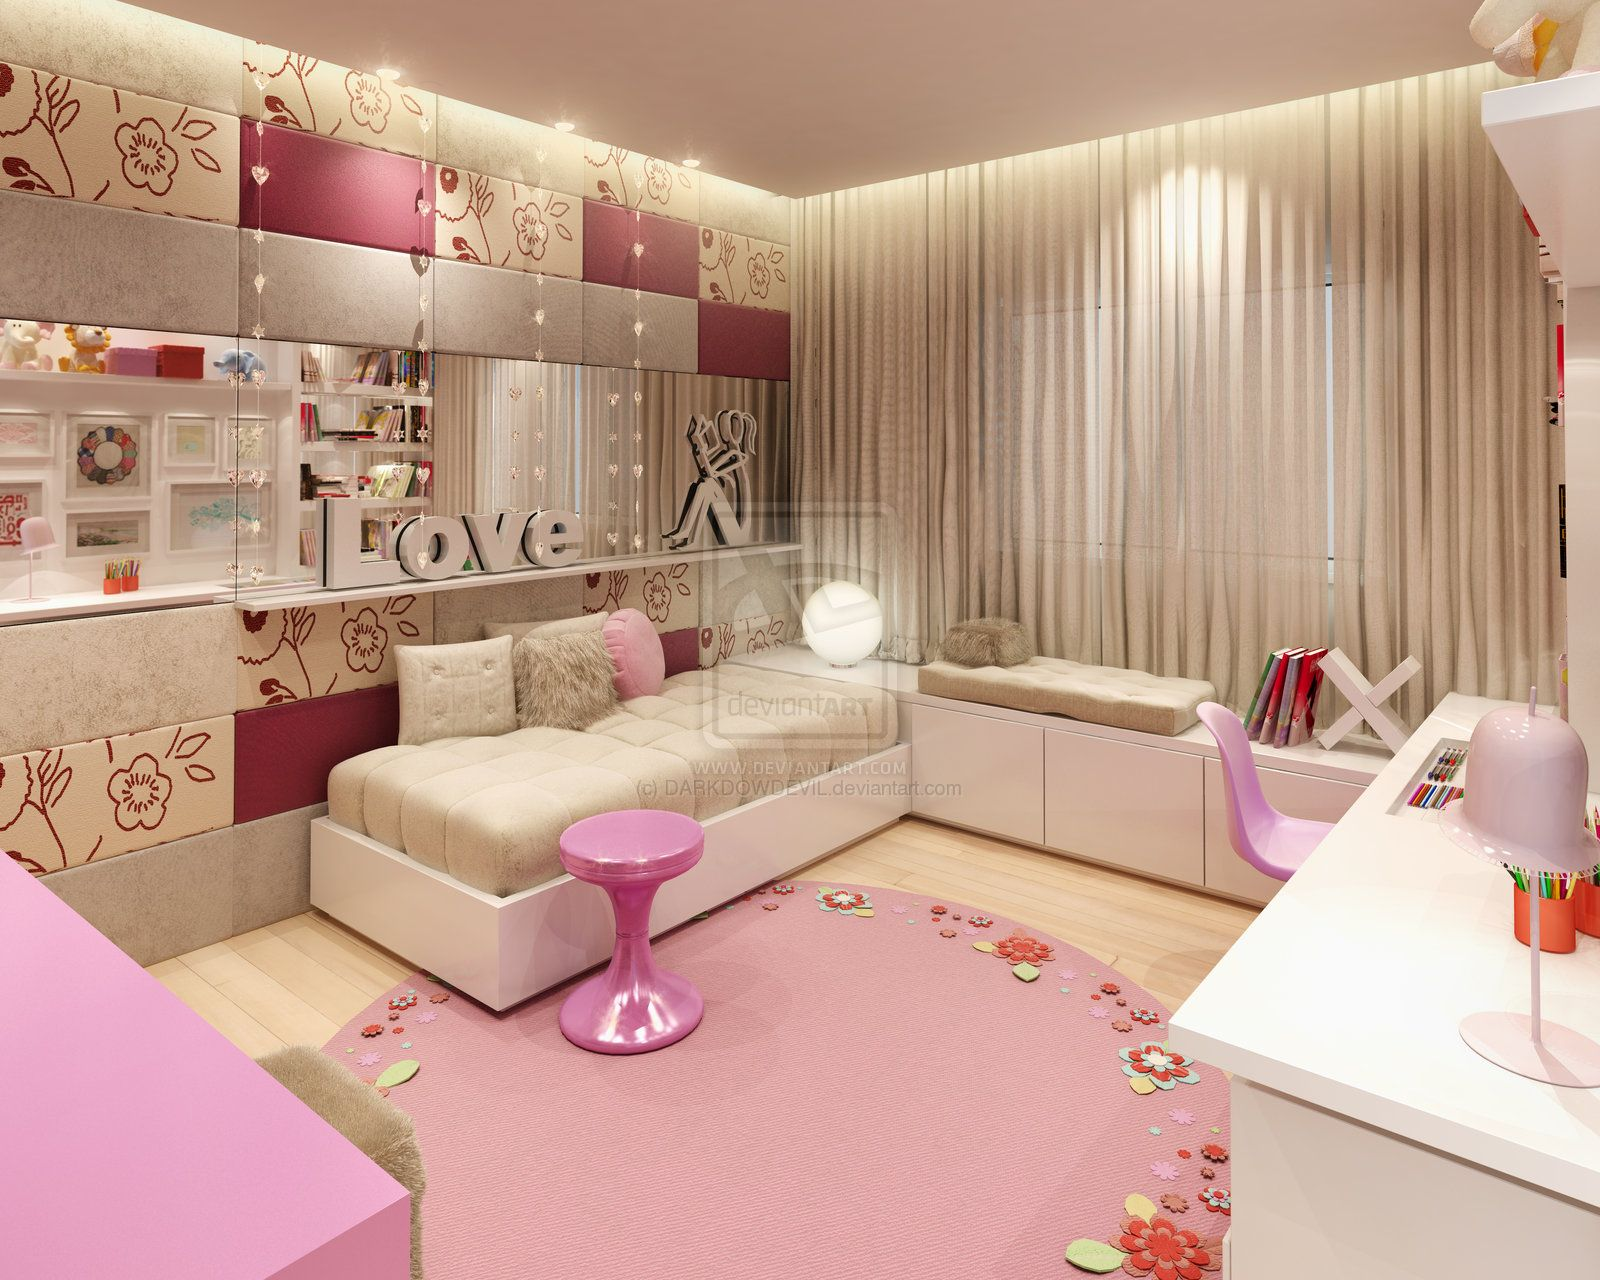 30 dream interior design ideas for teenage girl's rooms | bedrooms